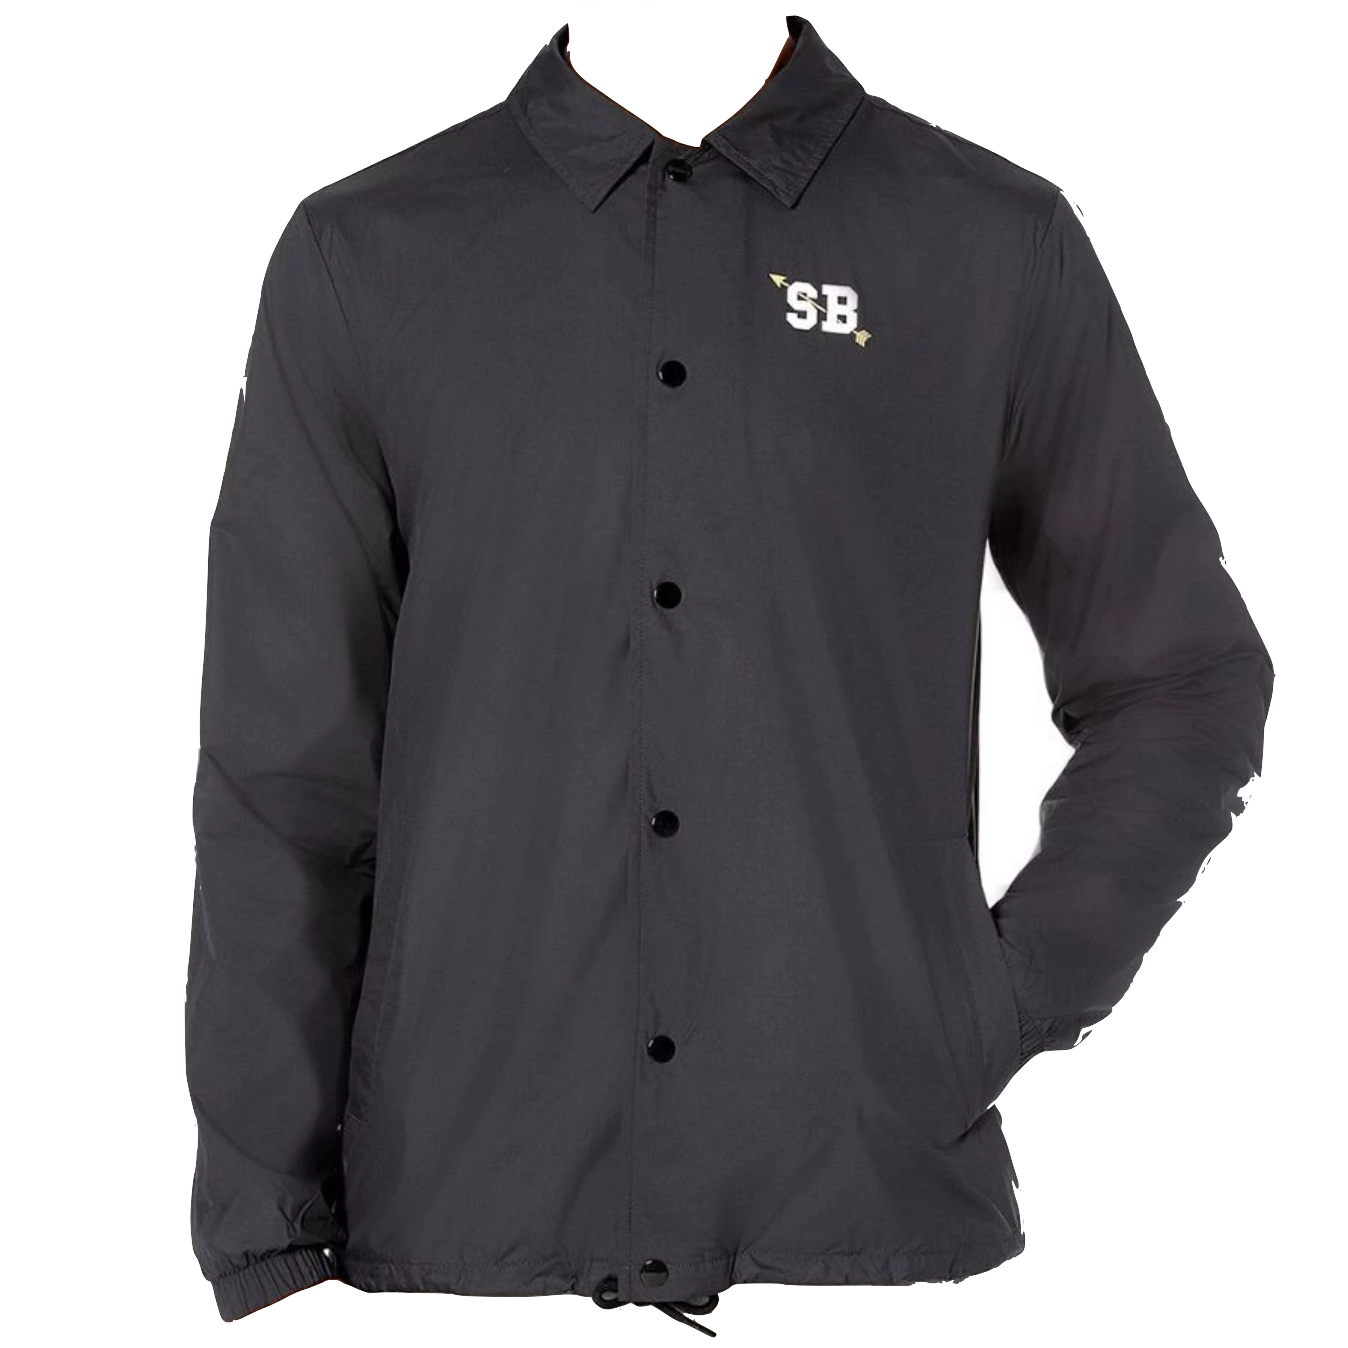 NIKE SB SHIELD WATER RESISTANT JACKET